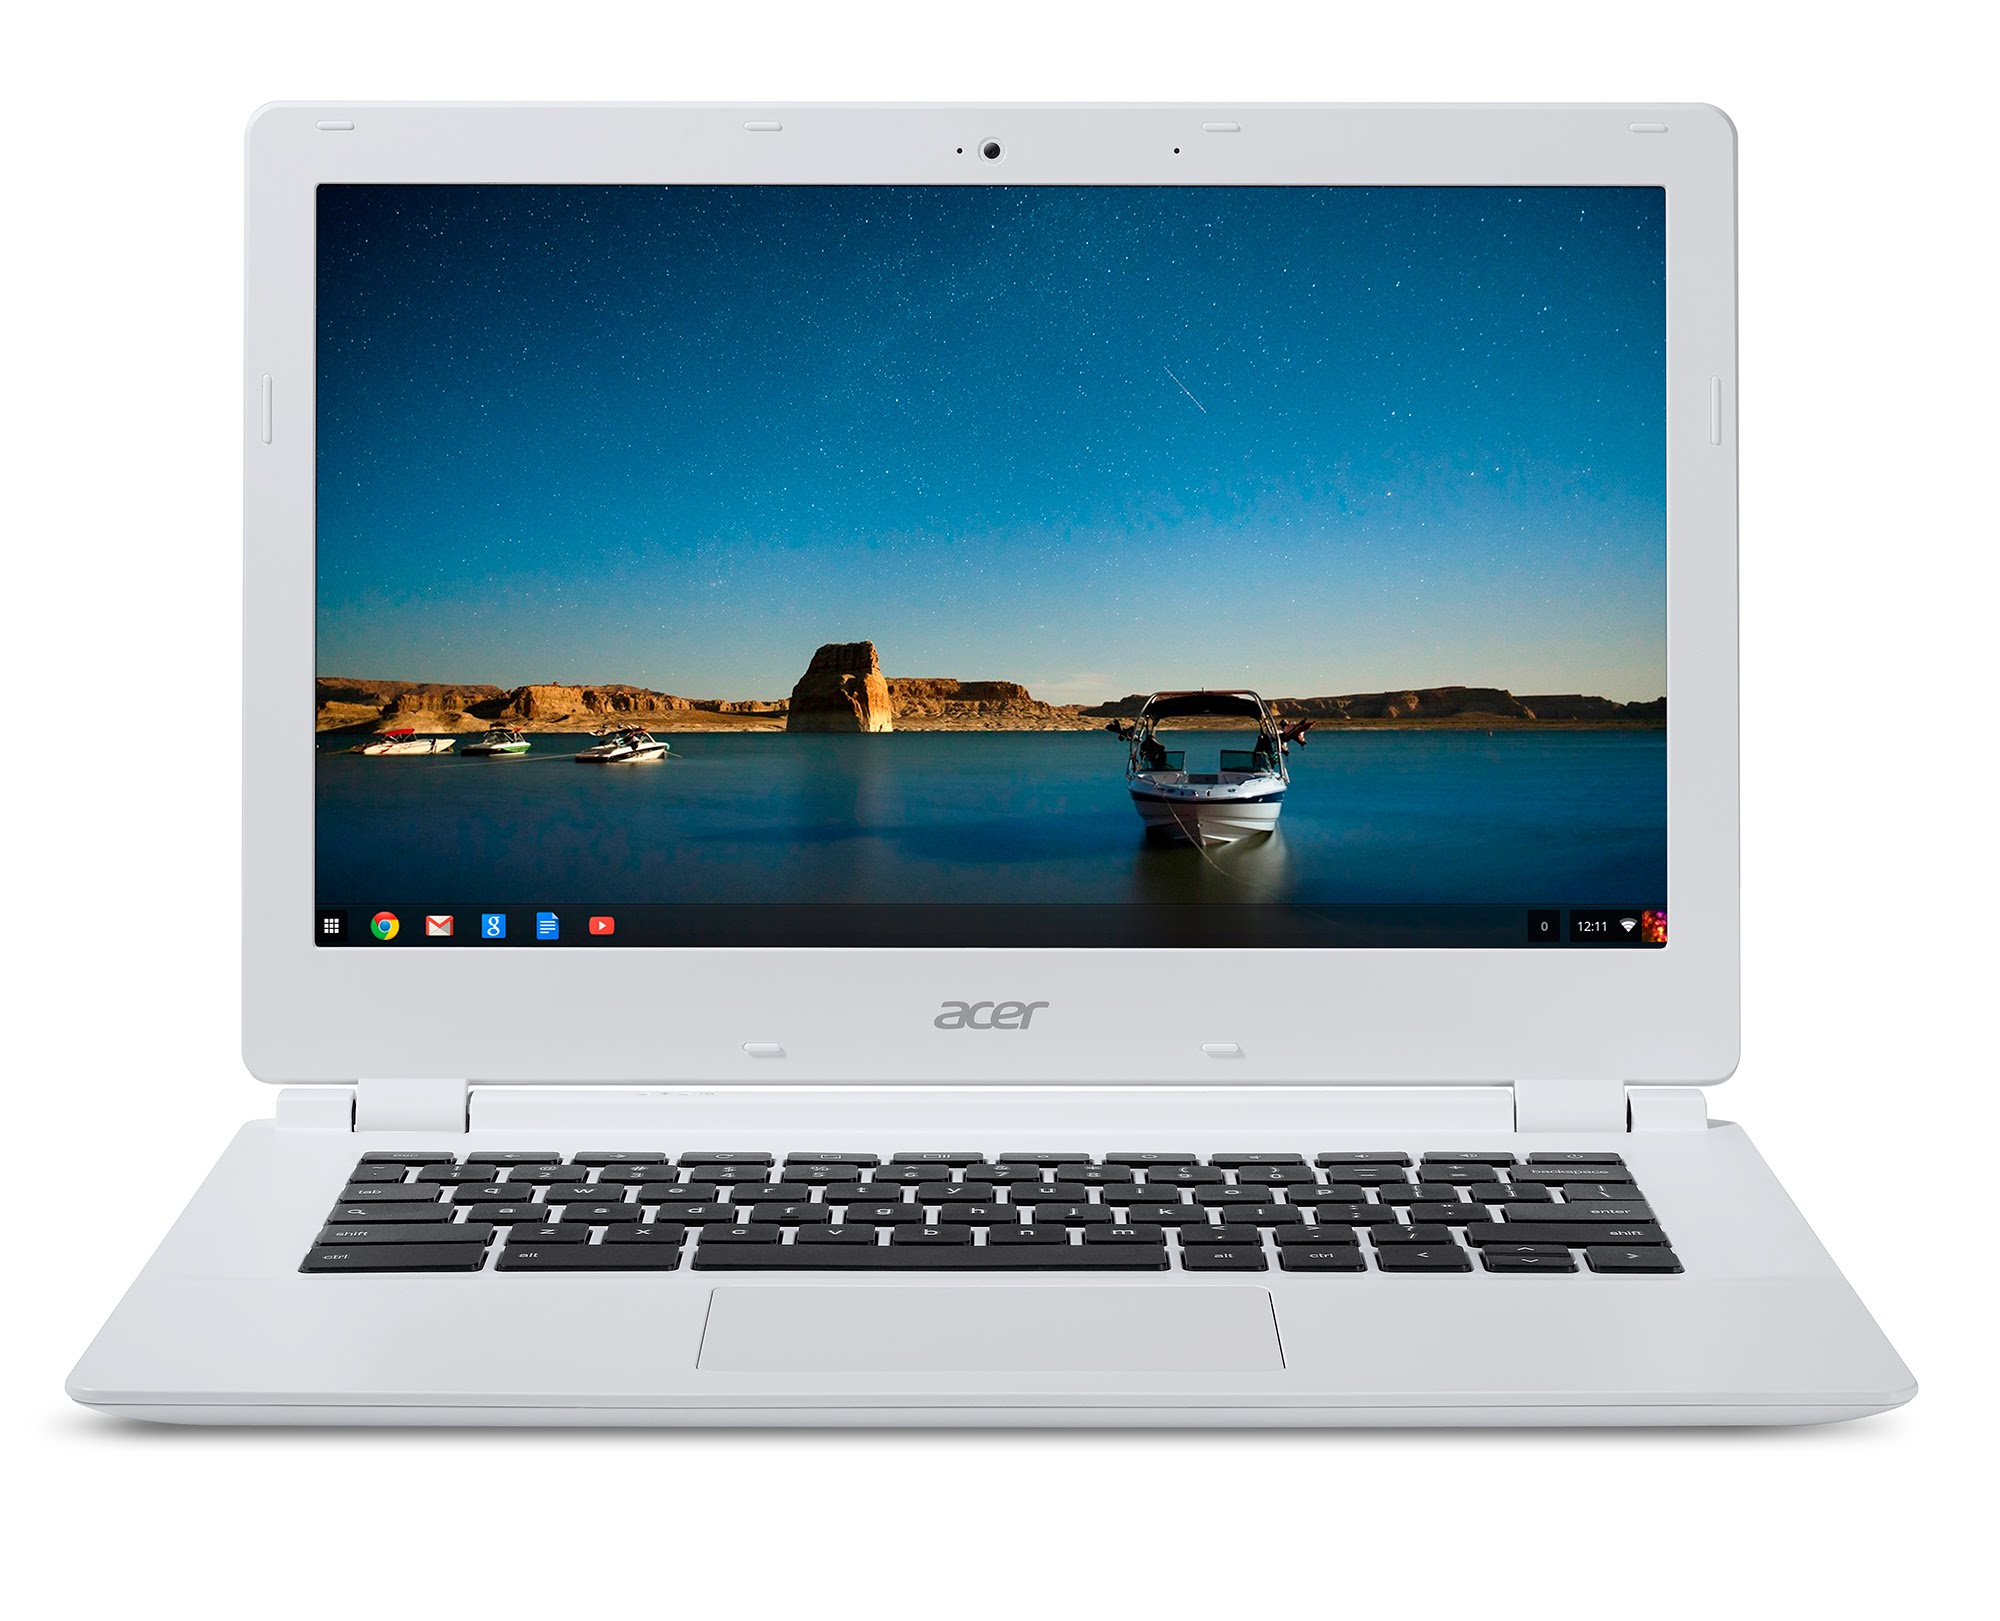 Acer Chromebook 13 Acer Chromebook 13 Review Acer Chromebook 13 Review Acer Chromebook 13 Battery